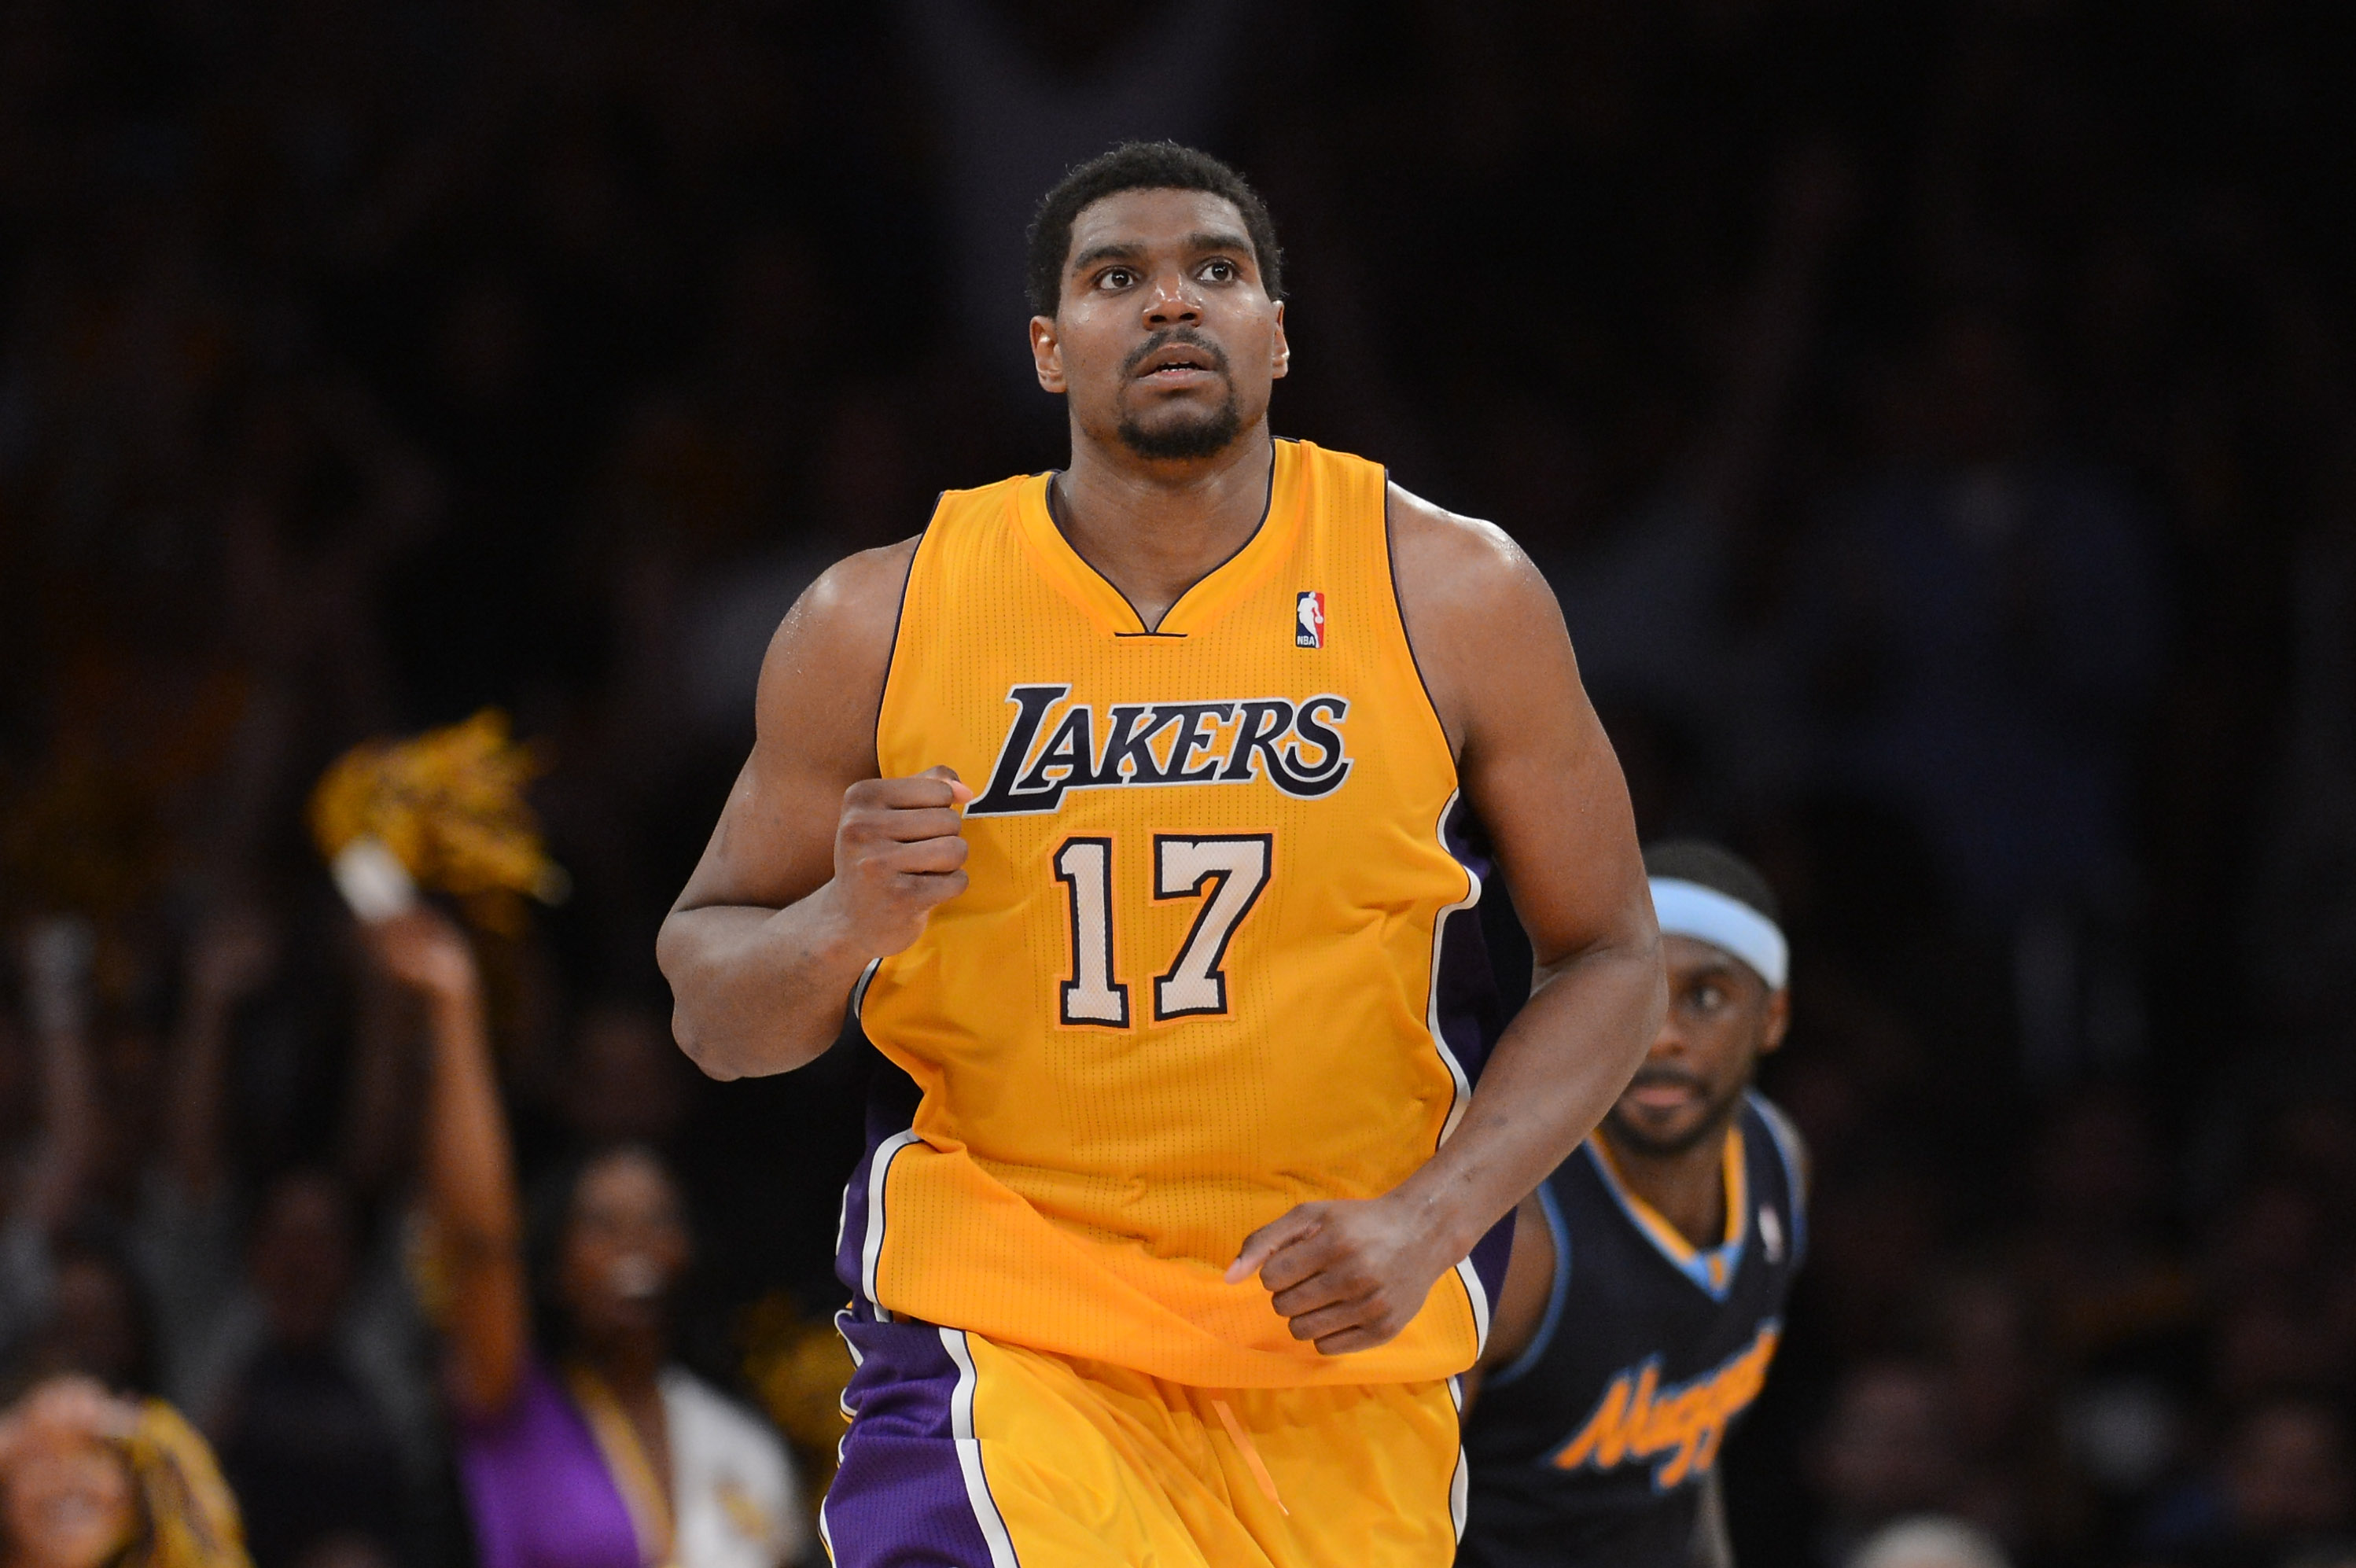 Andrew Bynum was an All-Star with the Lakers for the first time last season. (Getty Images)